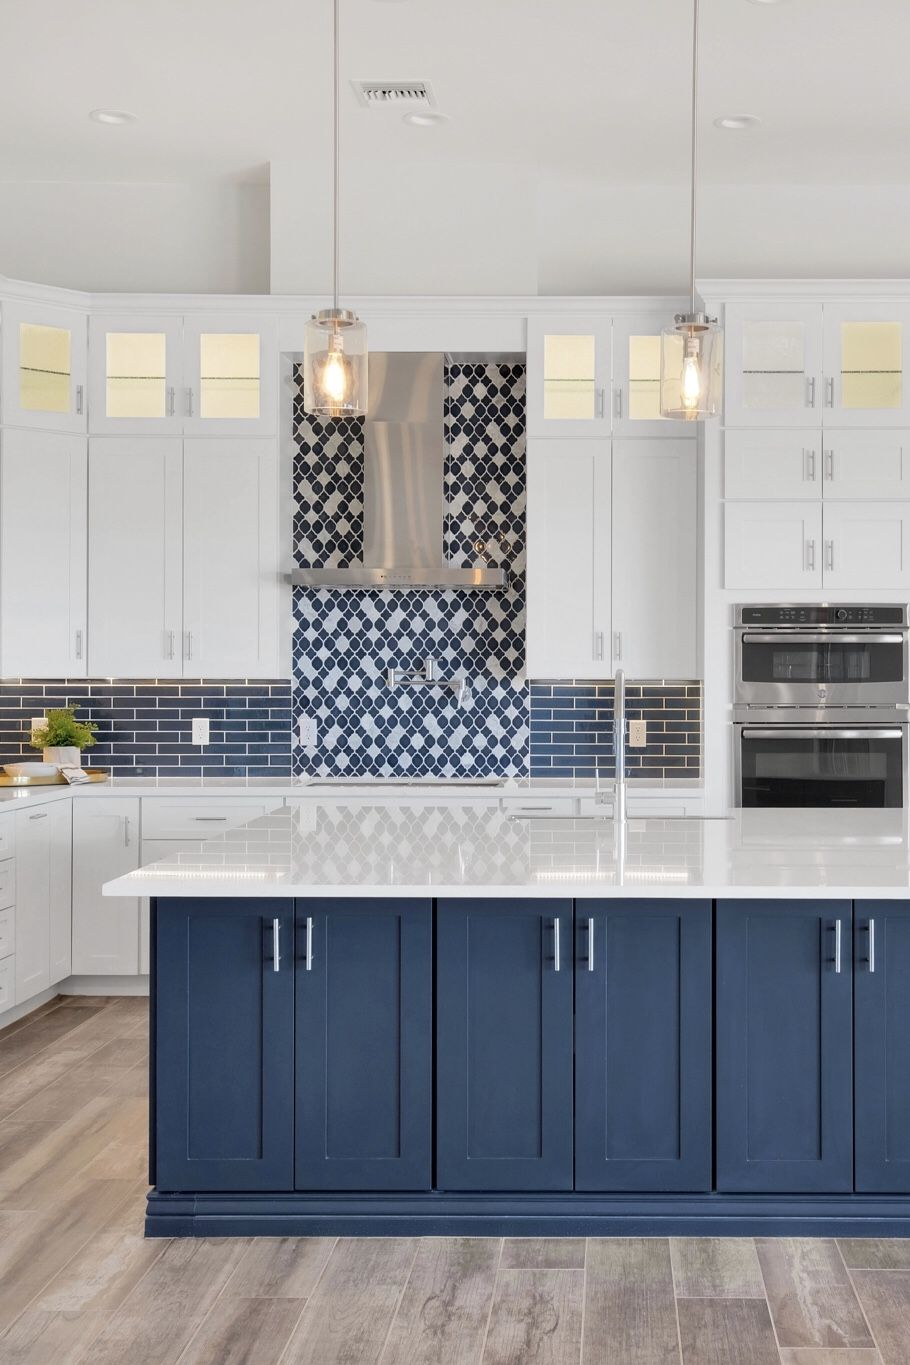 We Love Color White Kitchen Cabinets And A Blue Kitchen Island In